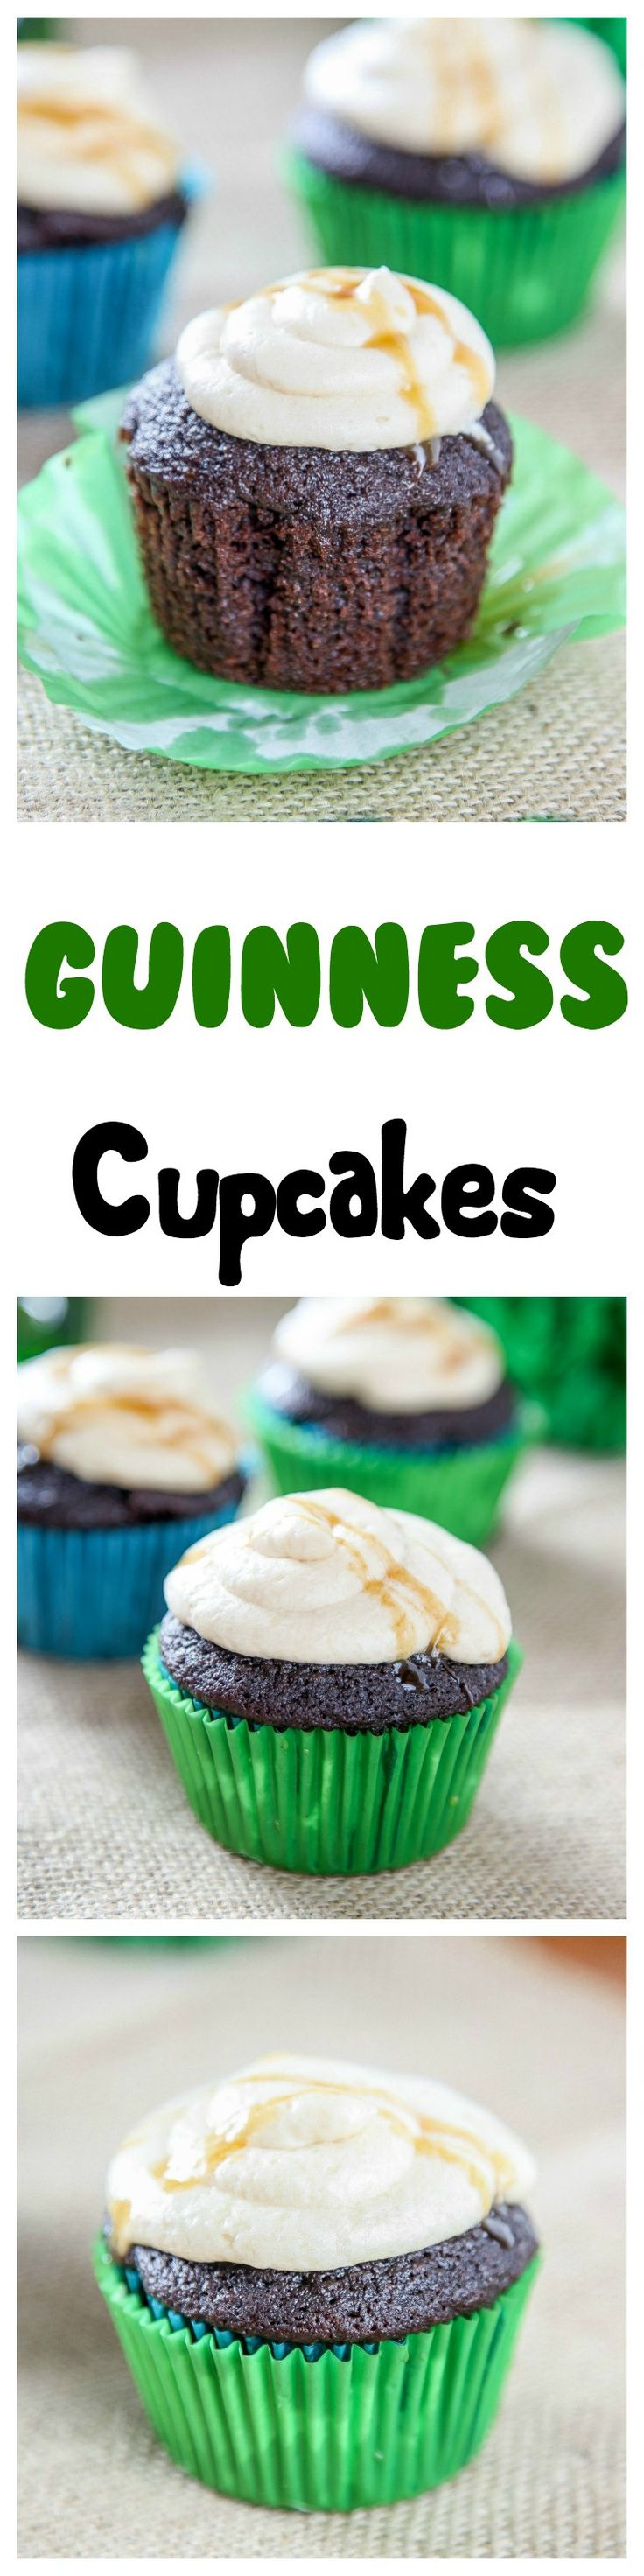 Guinness Cupcakes: Rich chocolate cupcakes topped with boozy buttercream and a decadent caramel drizzle.